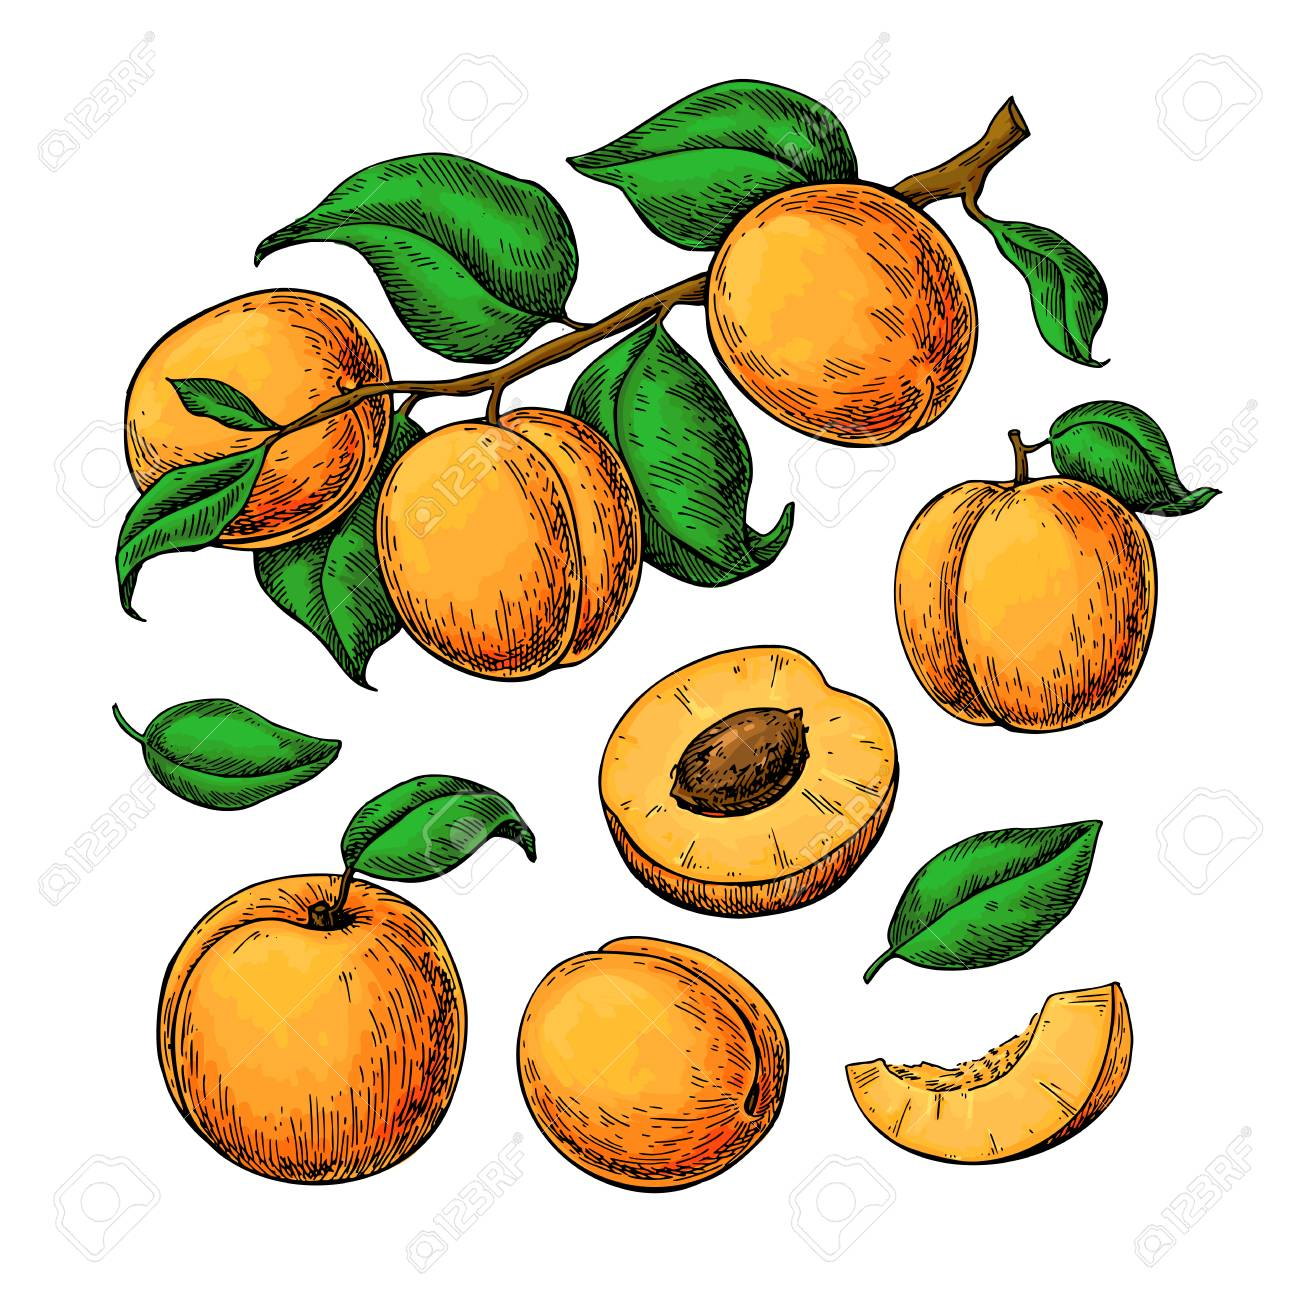 Apricot vector drawing set. Hand drawn fruit, branch and sliced pieces - 99694345